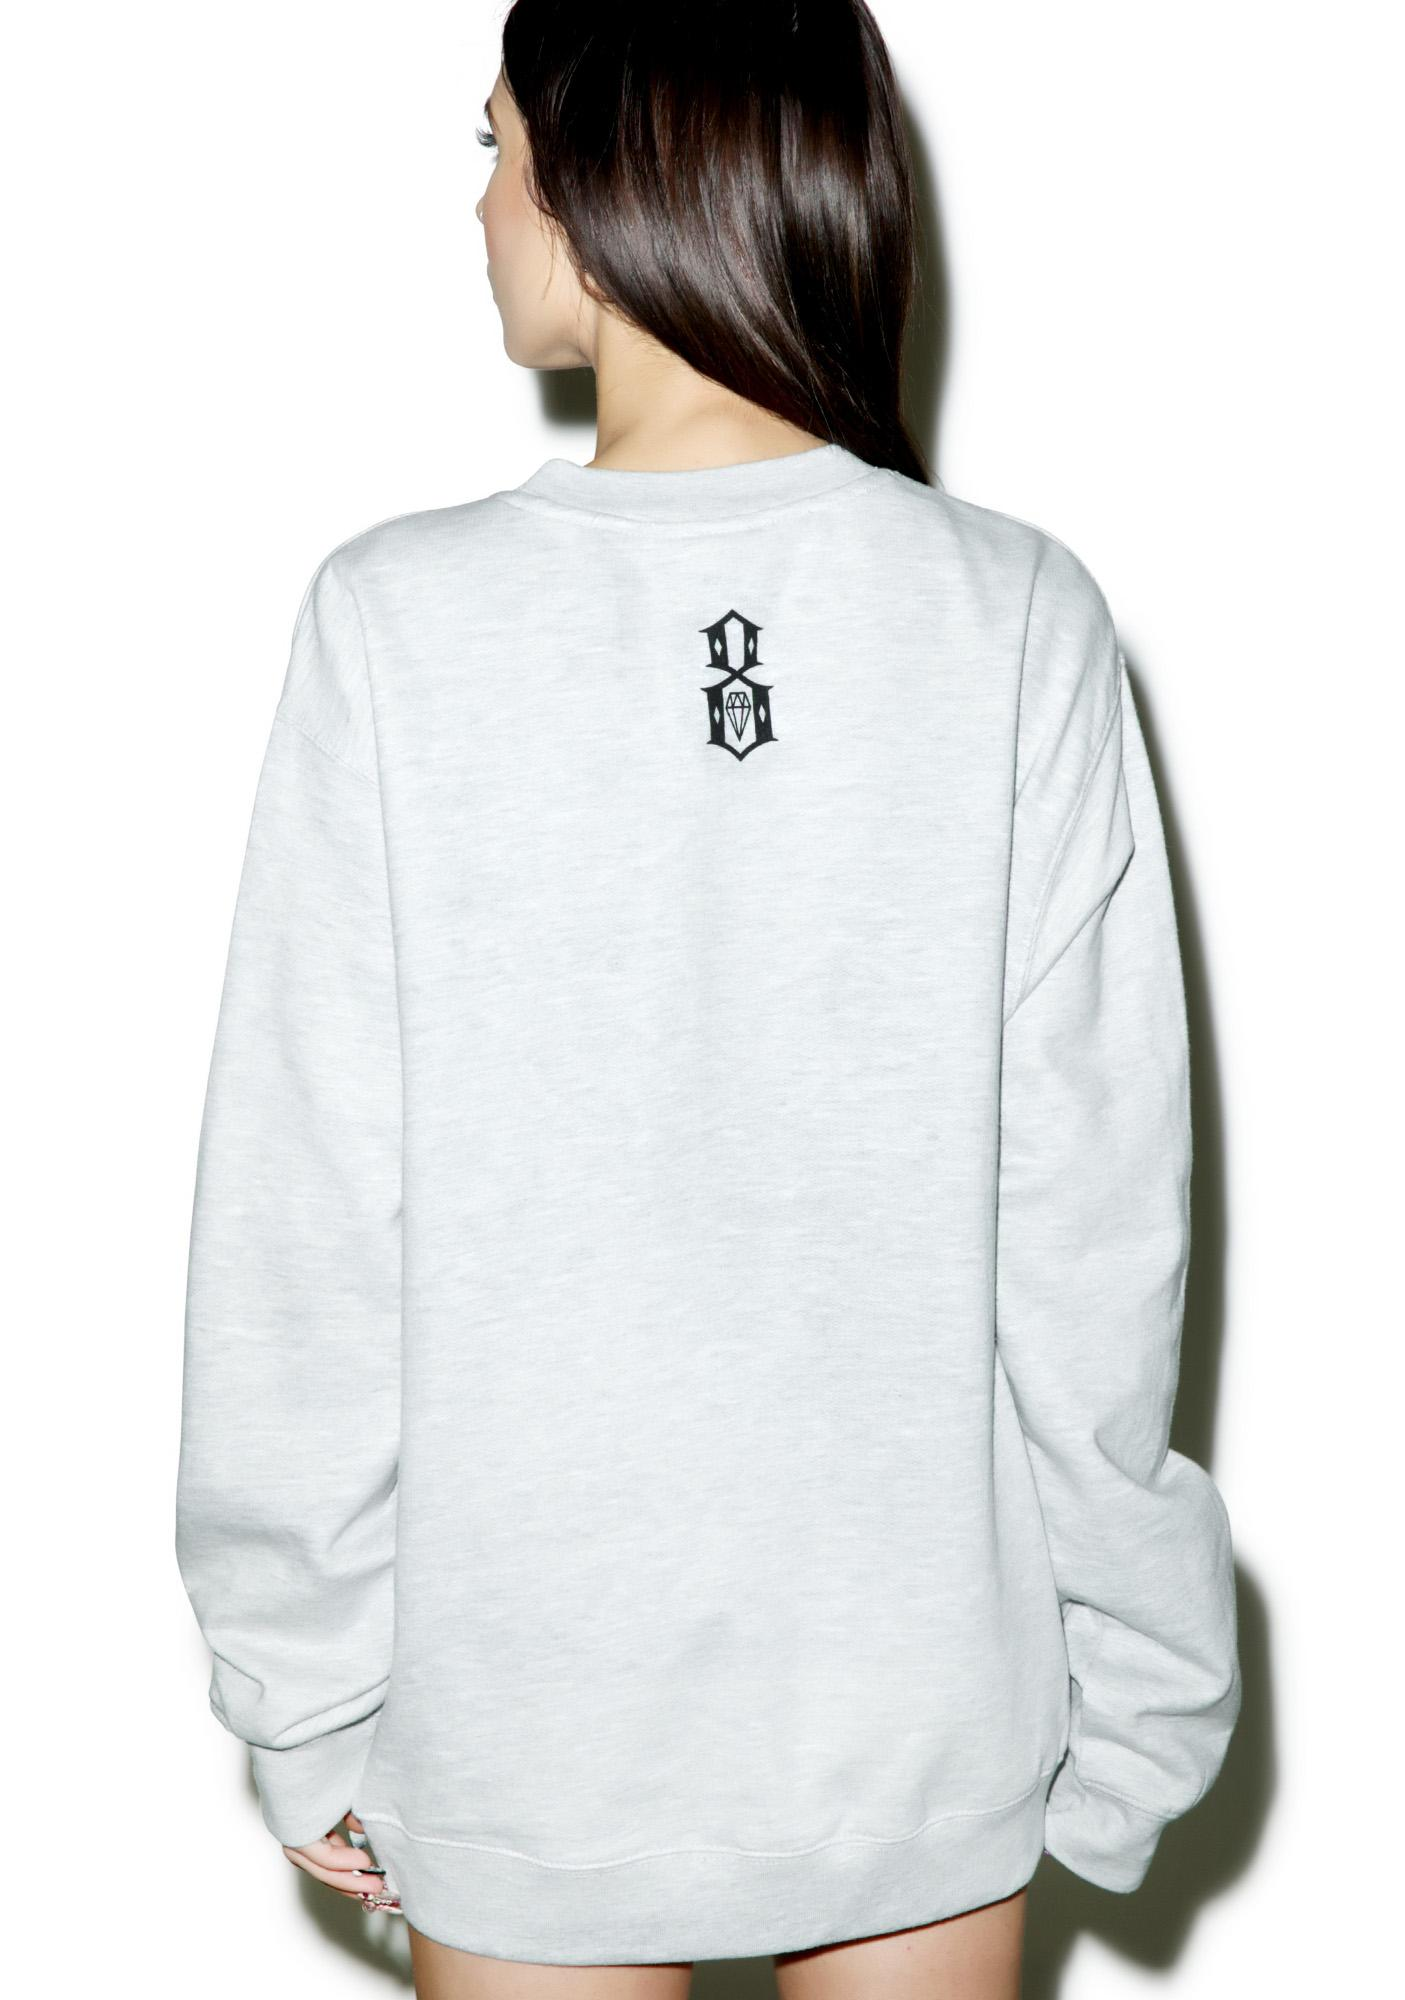 Rebel8 Riot Regulators Crewneck